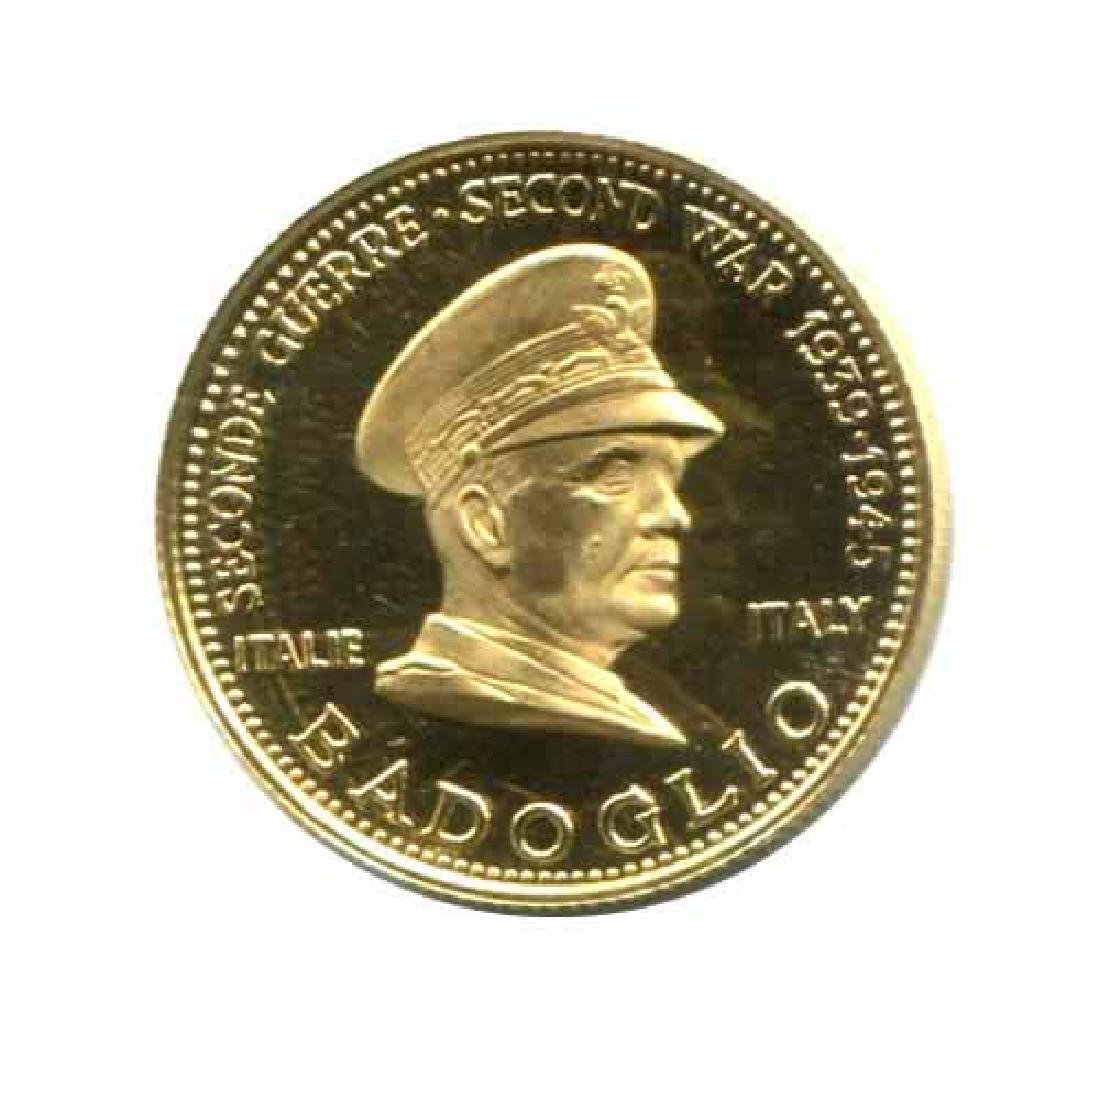 WWII Commemorative Proof Gold Medal 7g. 1958 Badoglio